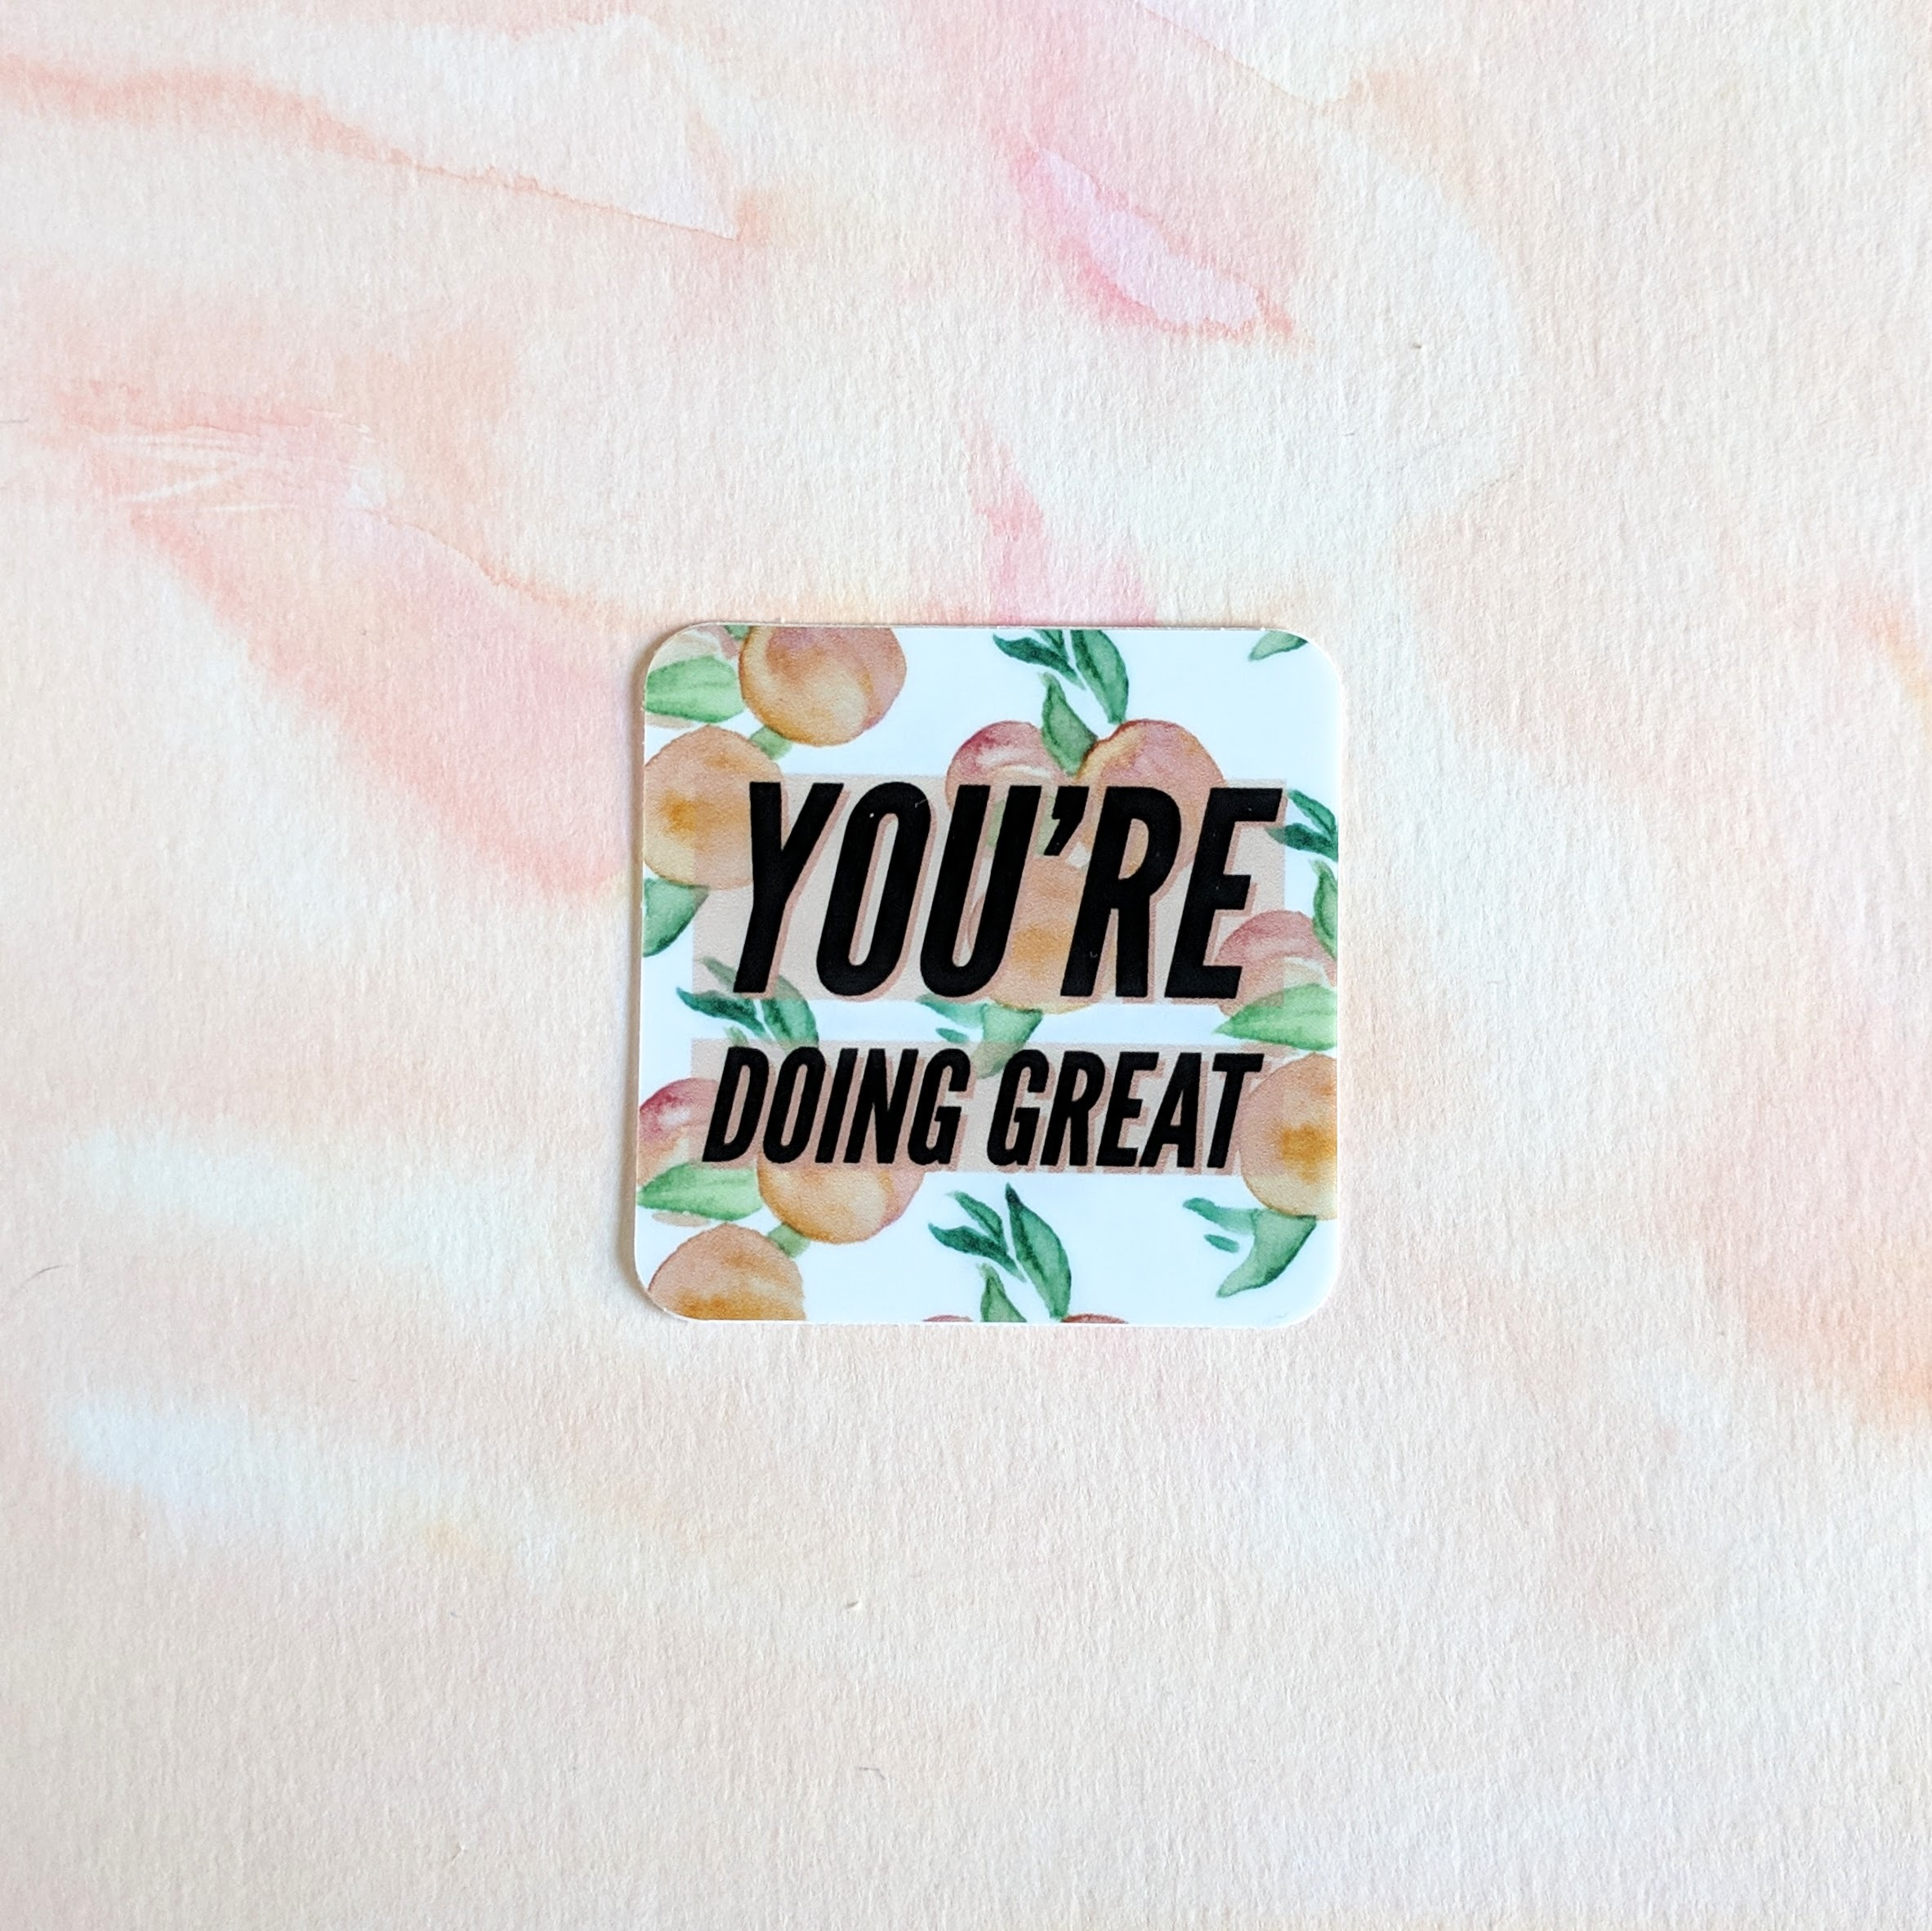 You're Doing Great - Peaches Watercolor - Durable Vinyl Sticker 00010